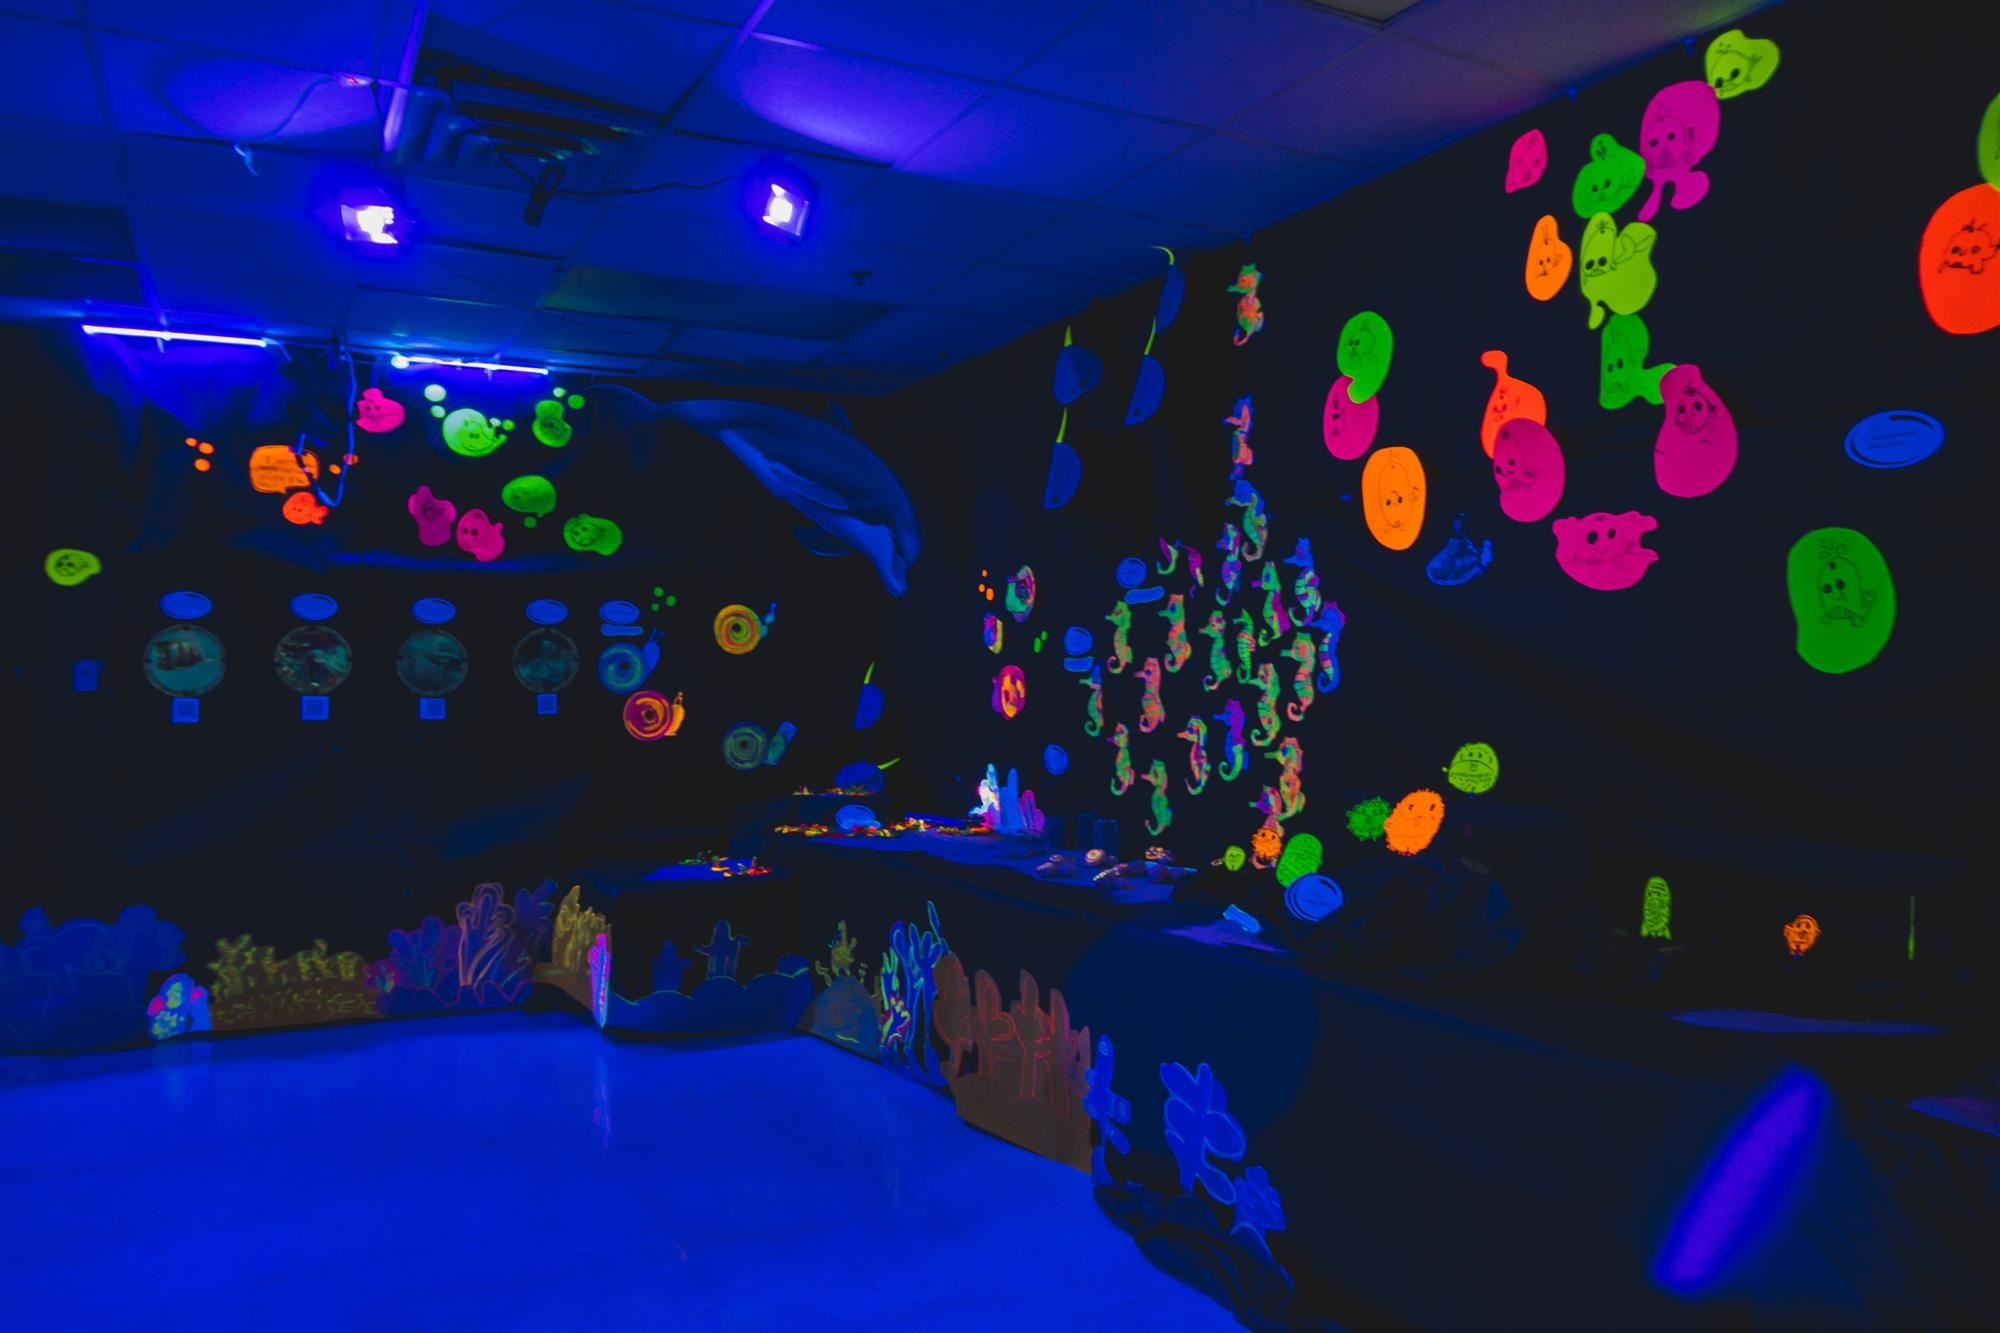 Imaginarium room with black lights and glowing artwork